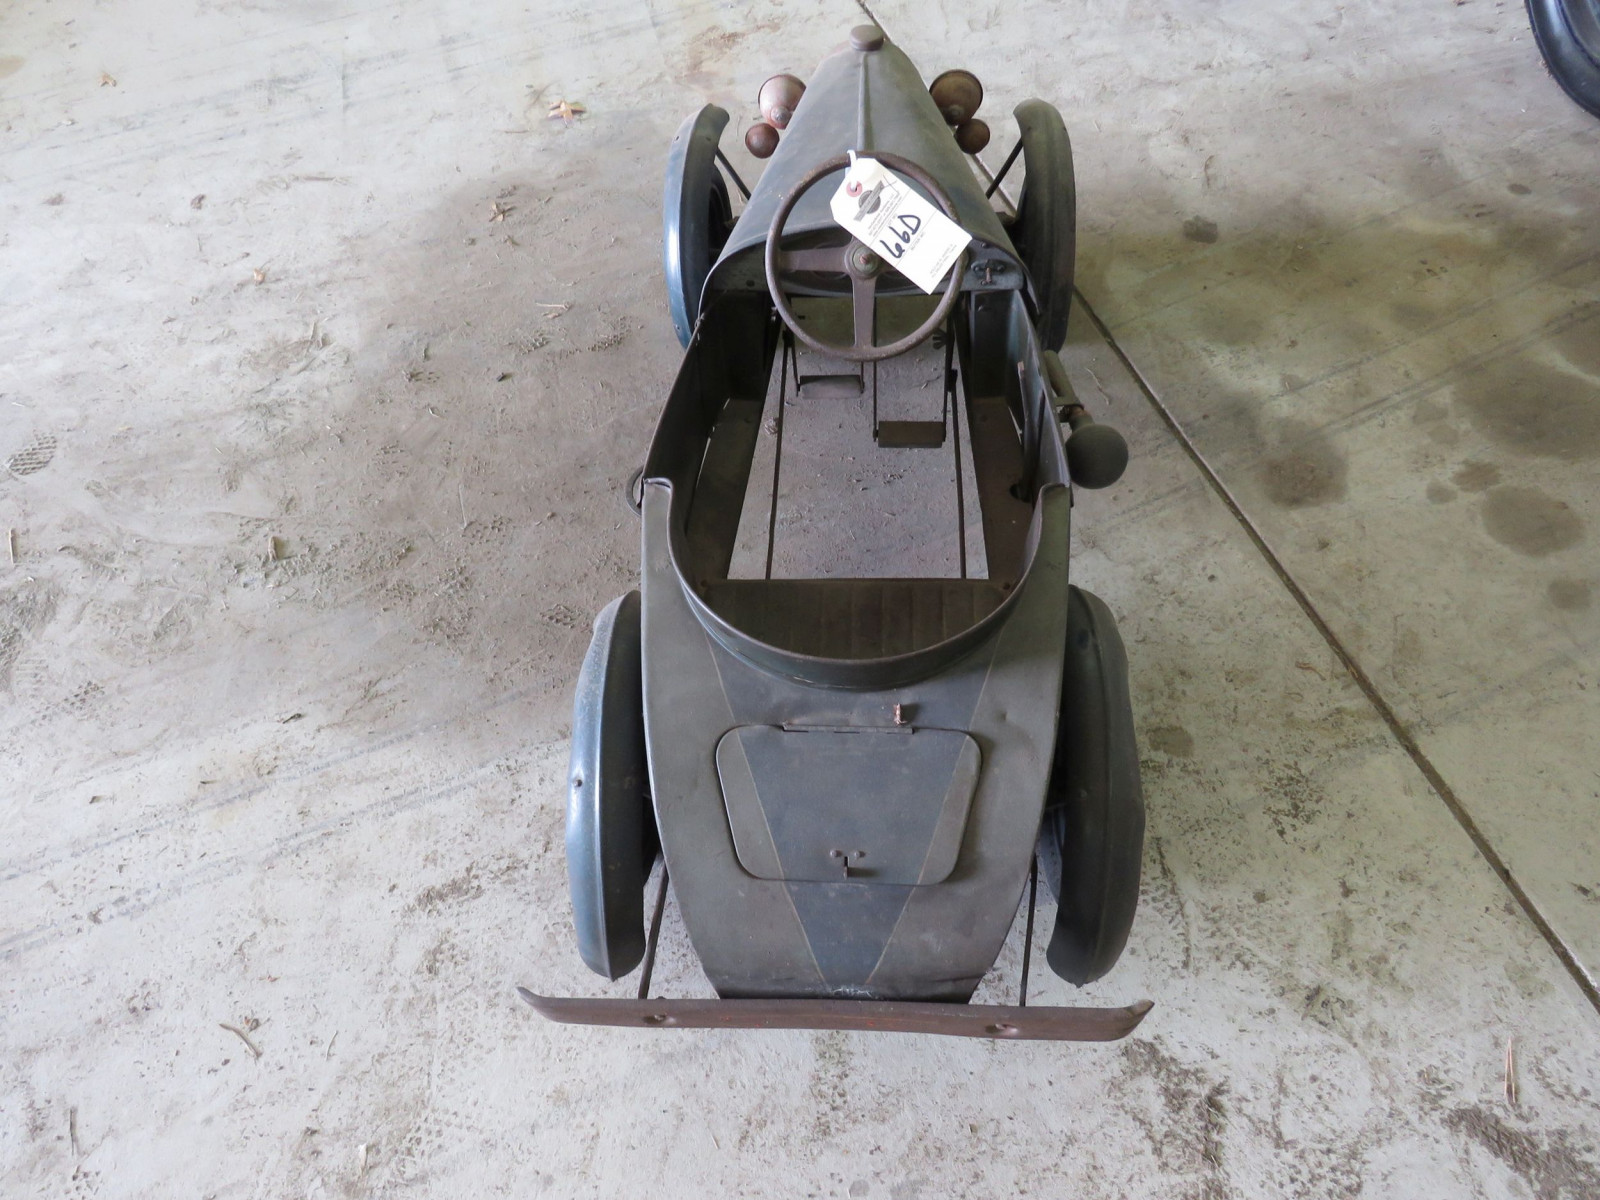 Vintage Regal Cycles Roadster Pedal Car - Image 9